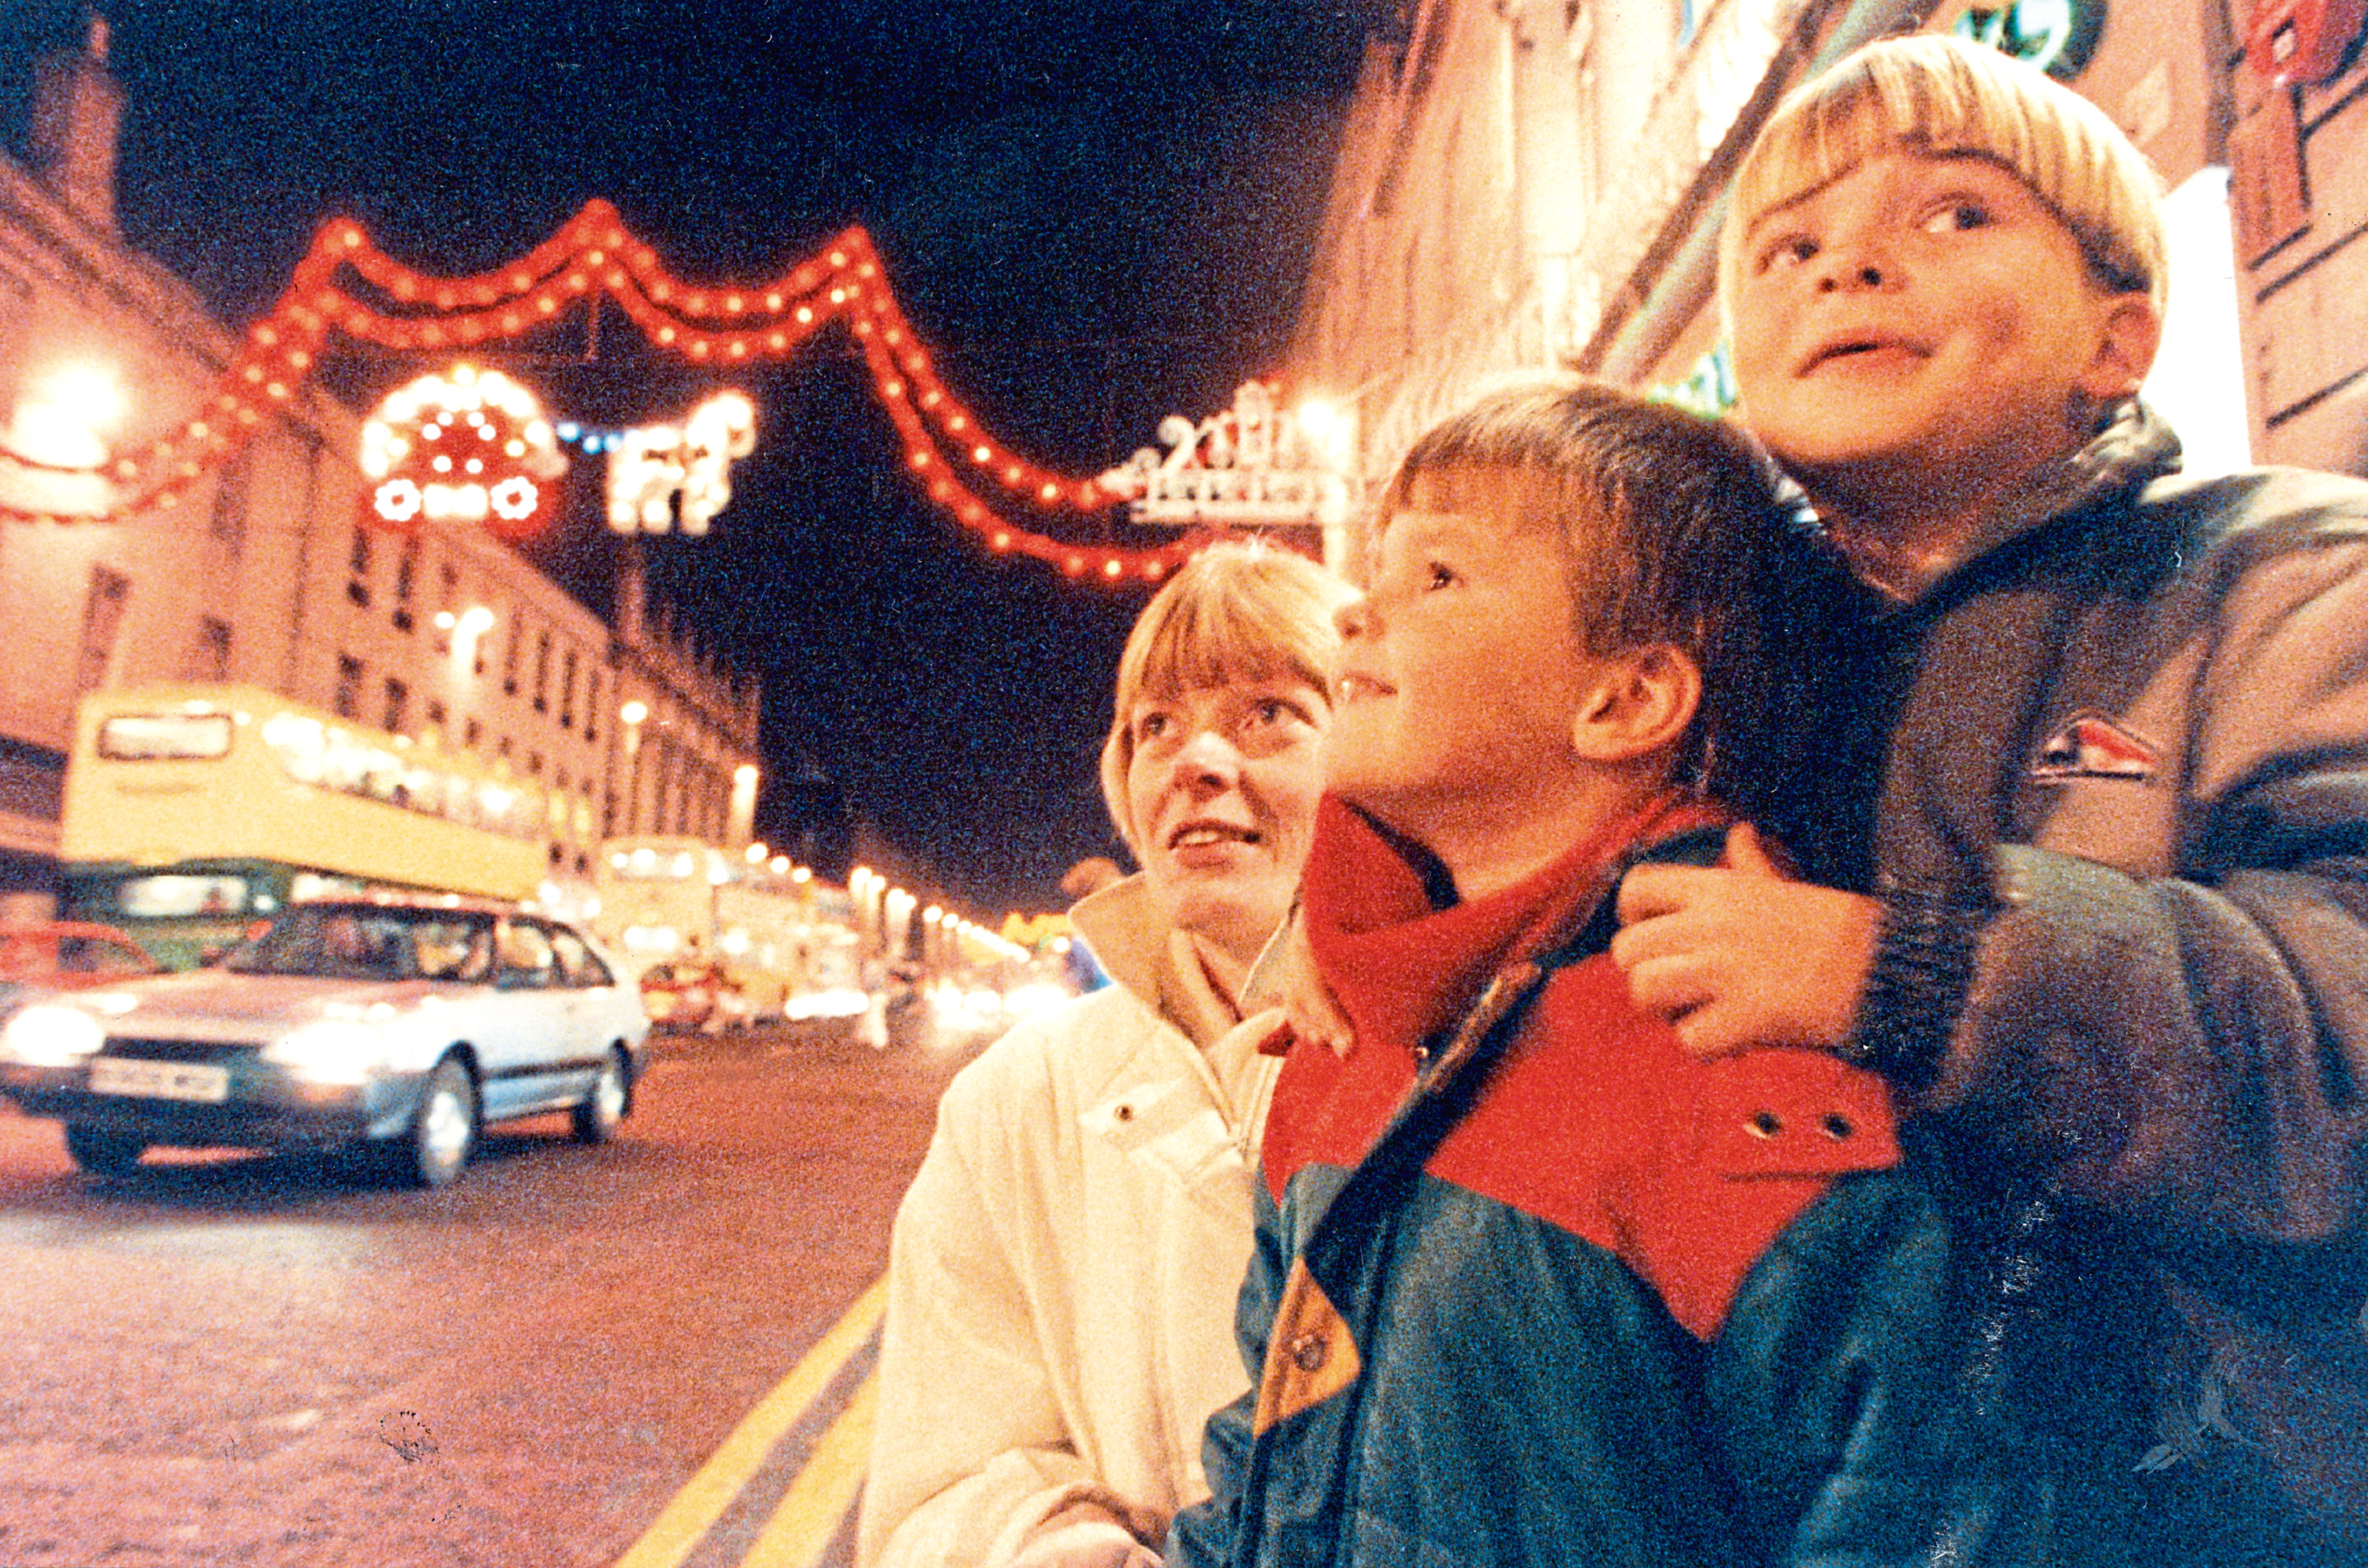 1990: Liz Grant and her sons Malcolm, 4, and Andrew, 6, admire the Christmas lights